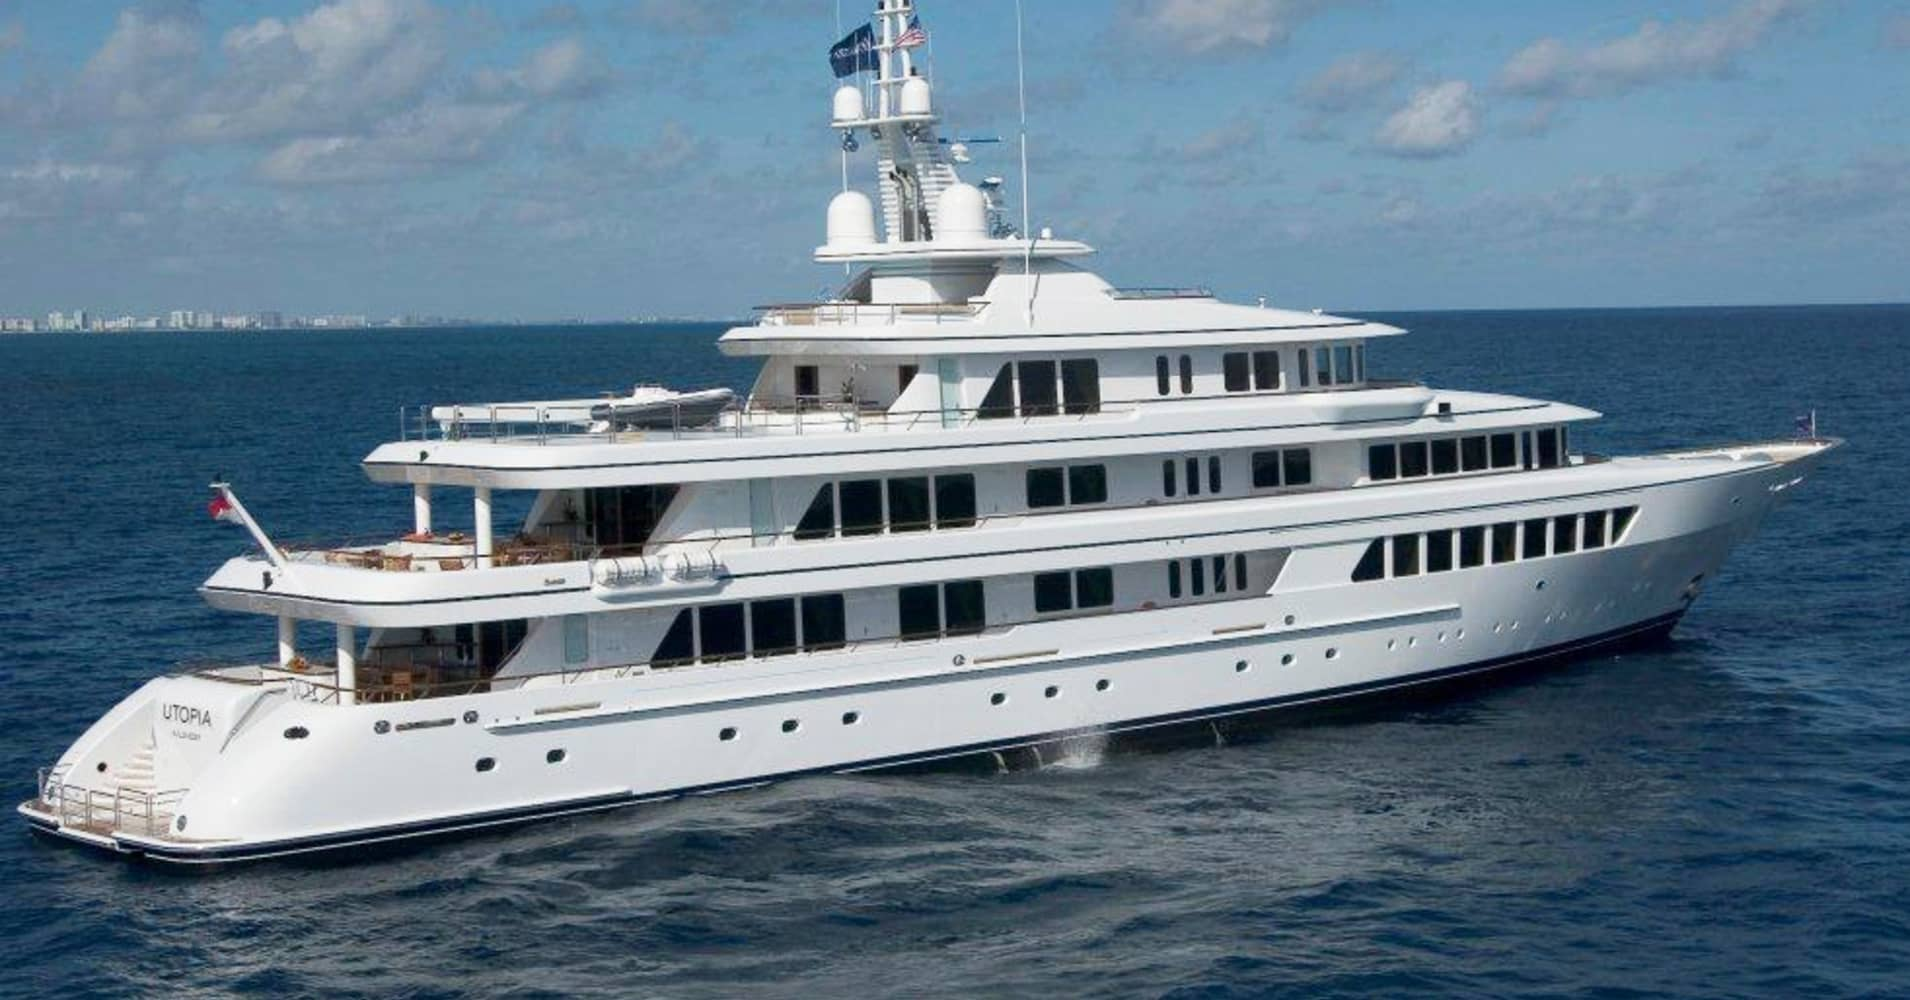 Megayacht sticker shock is only the beginning